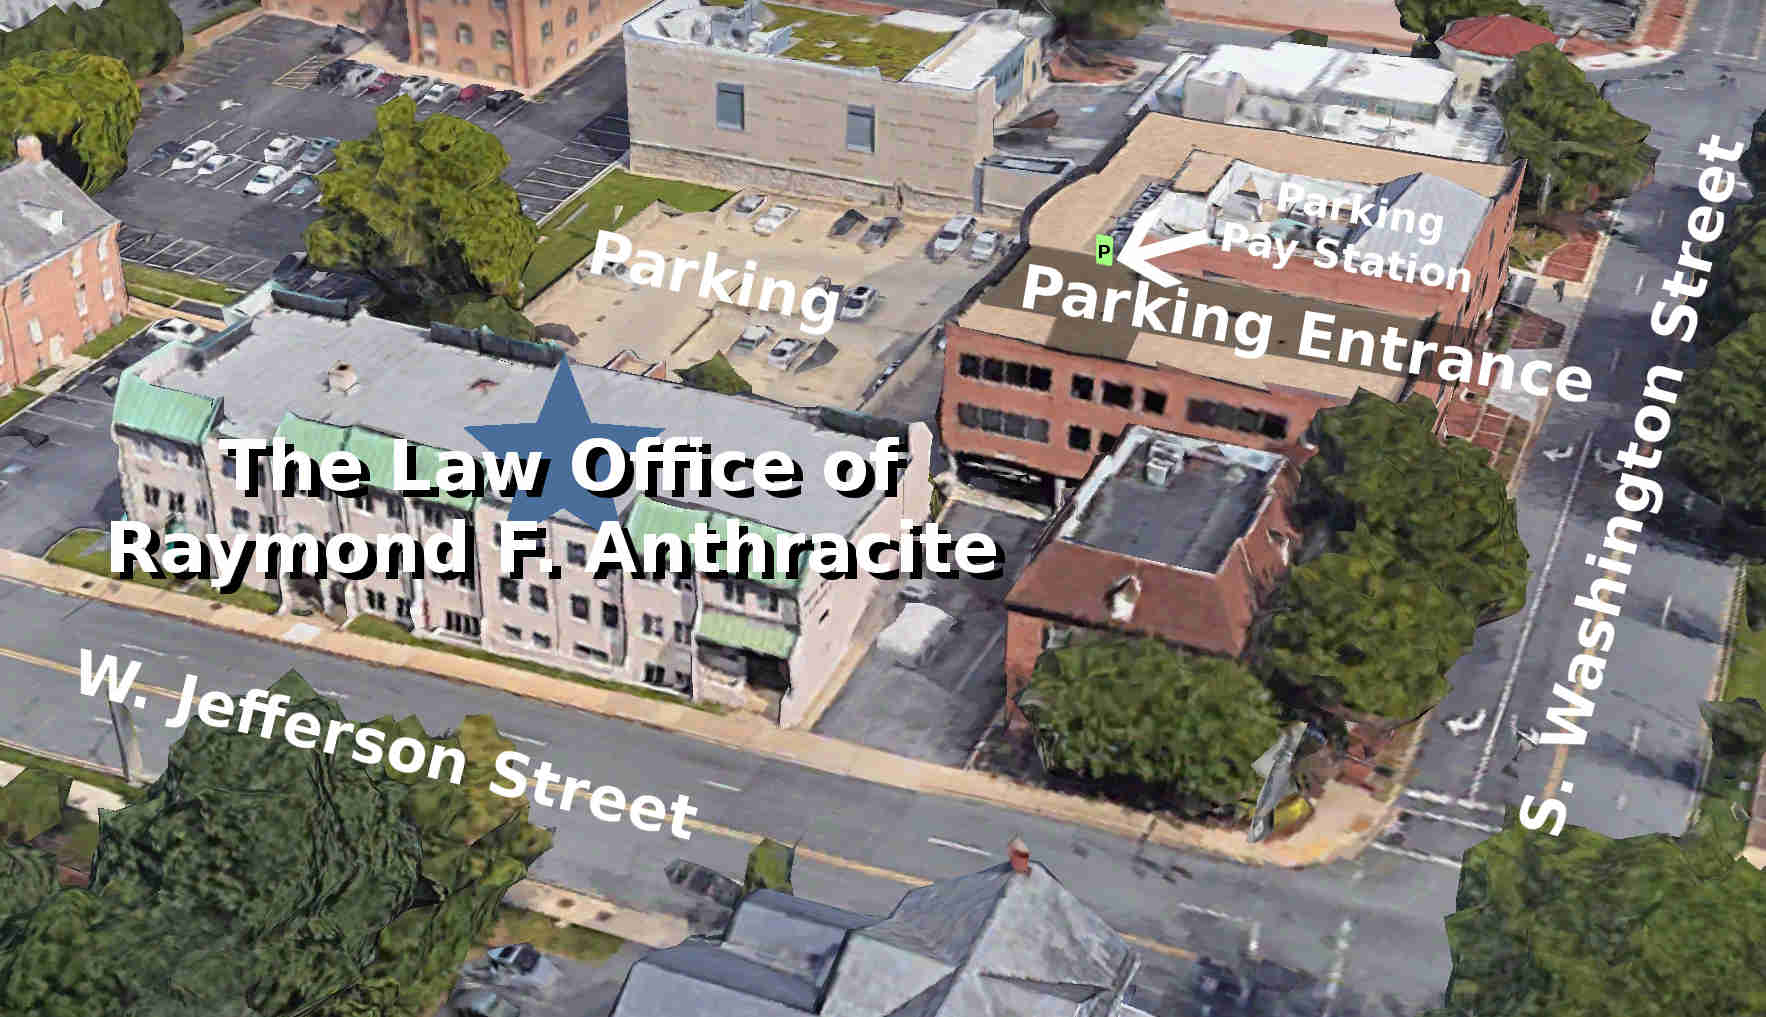 Law Office of Raymond F. Anthracite Parking Directions